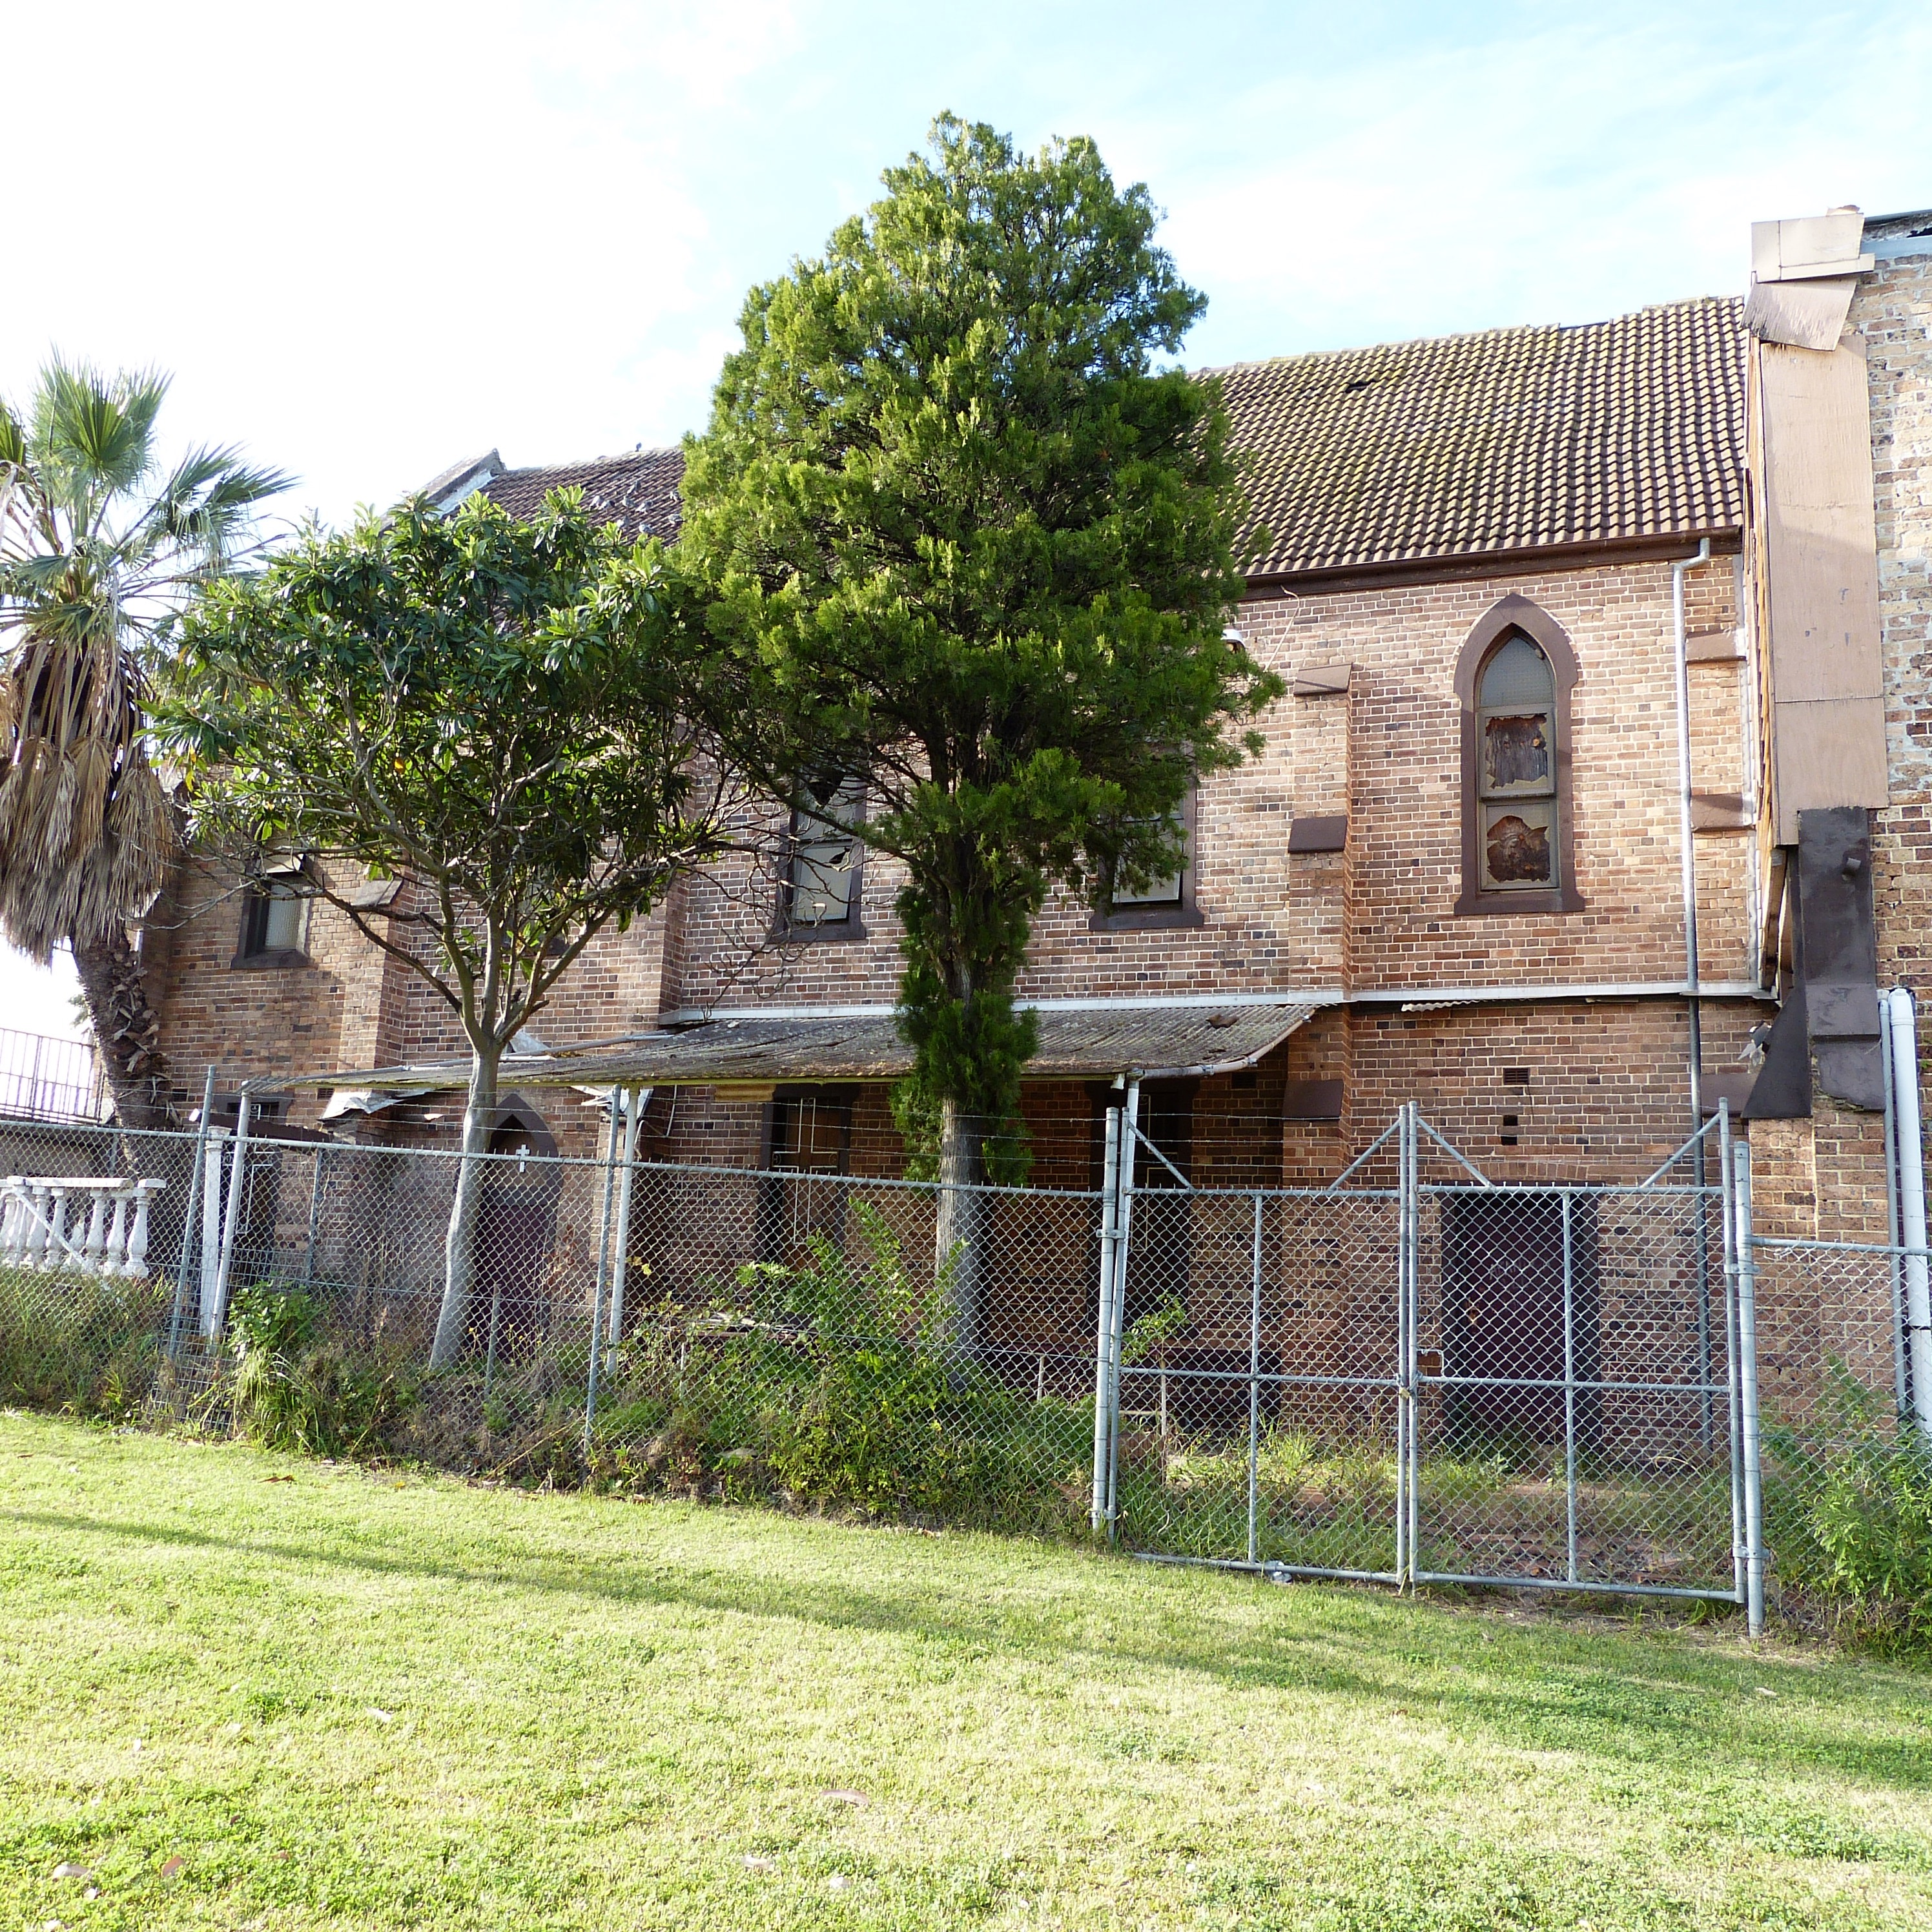 This Church was the first EgyptianCoptic  Church in Australia and the first outside of Egypt. It was resumed by the Commonwealth when it became adversely affected by noise when the third runway was constructed at Sydney airport.